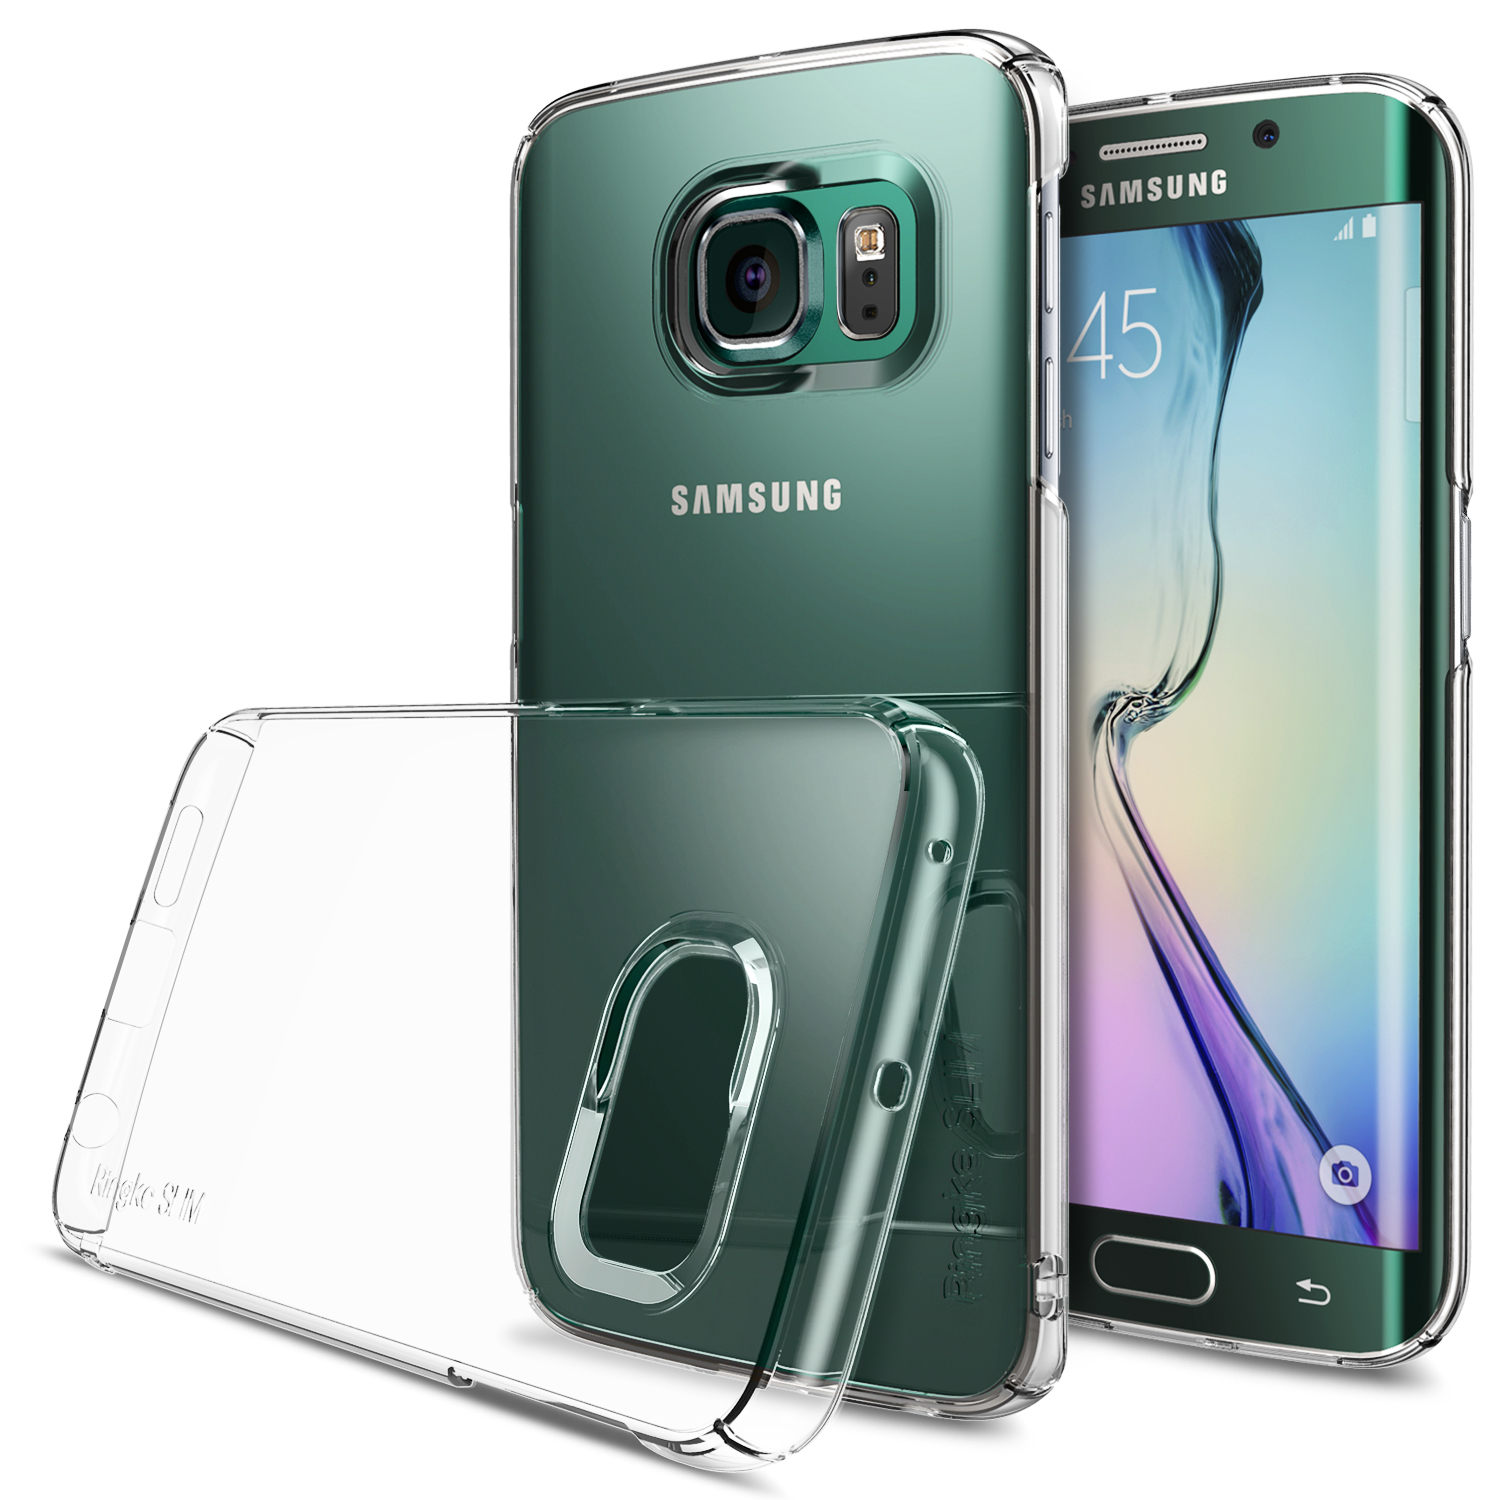 Samsung Galaxy S6 Edge Case, Ringke [Clear] SLIM Series Slim & Protective Crystal Glossy Snap-on Hard Polycarbonate Plastic Case Cover w/ Free Screen Protector